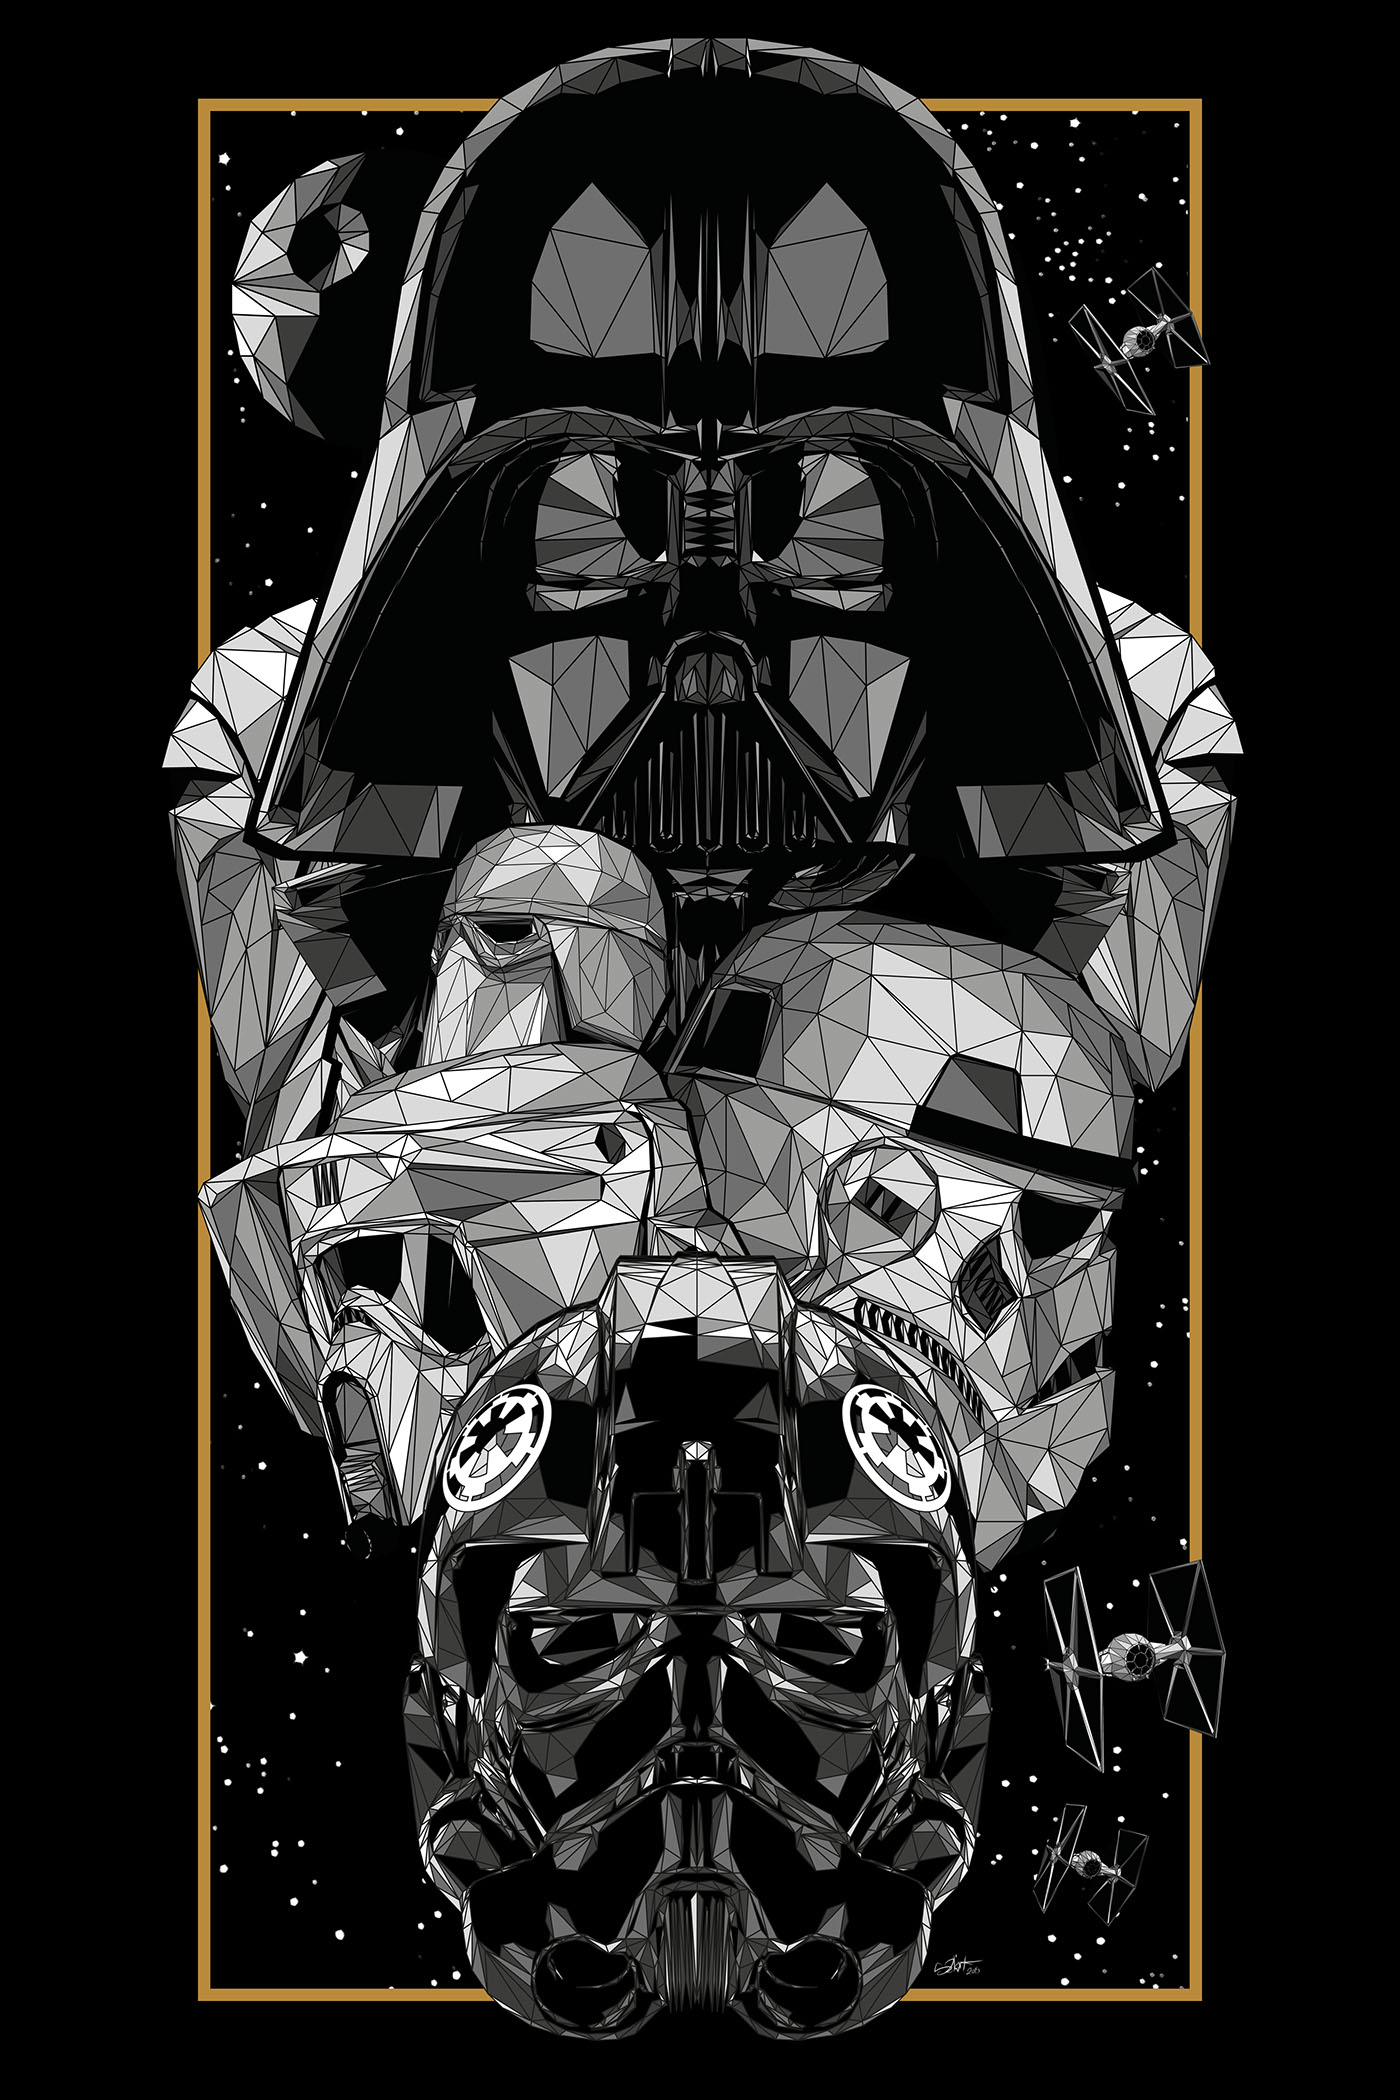 Iphone Wallpaper Icon Template Star Wars An Art Odyssey Official Exhibition On Behance